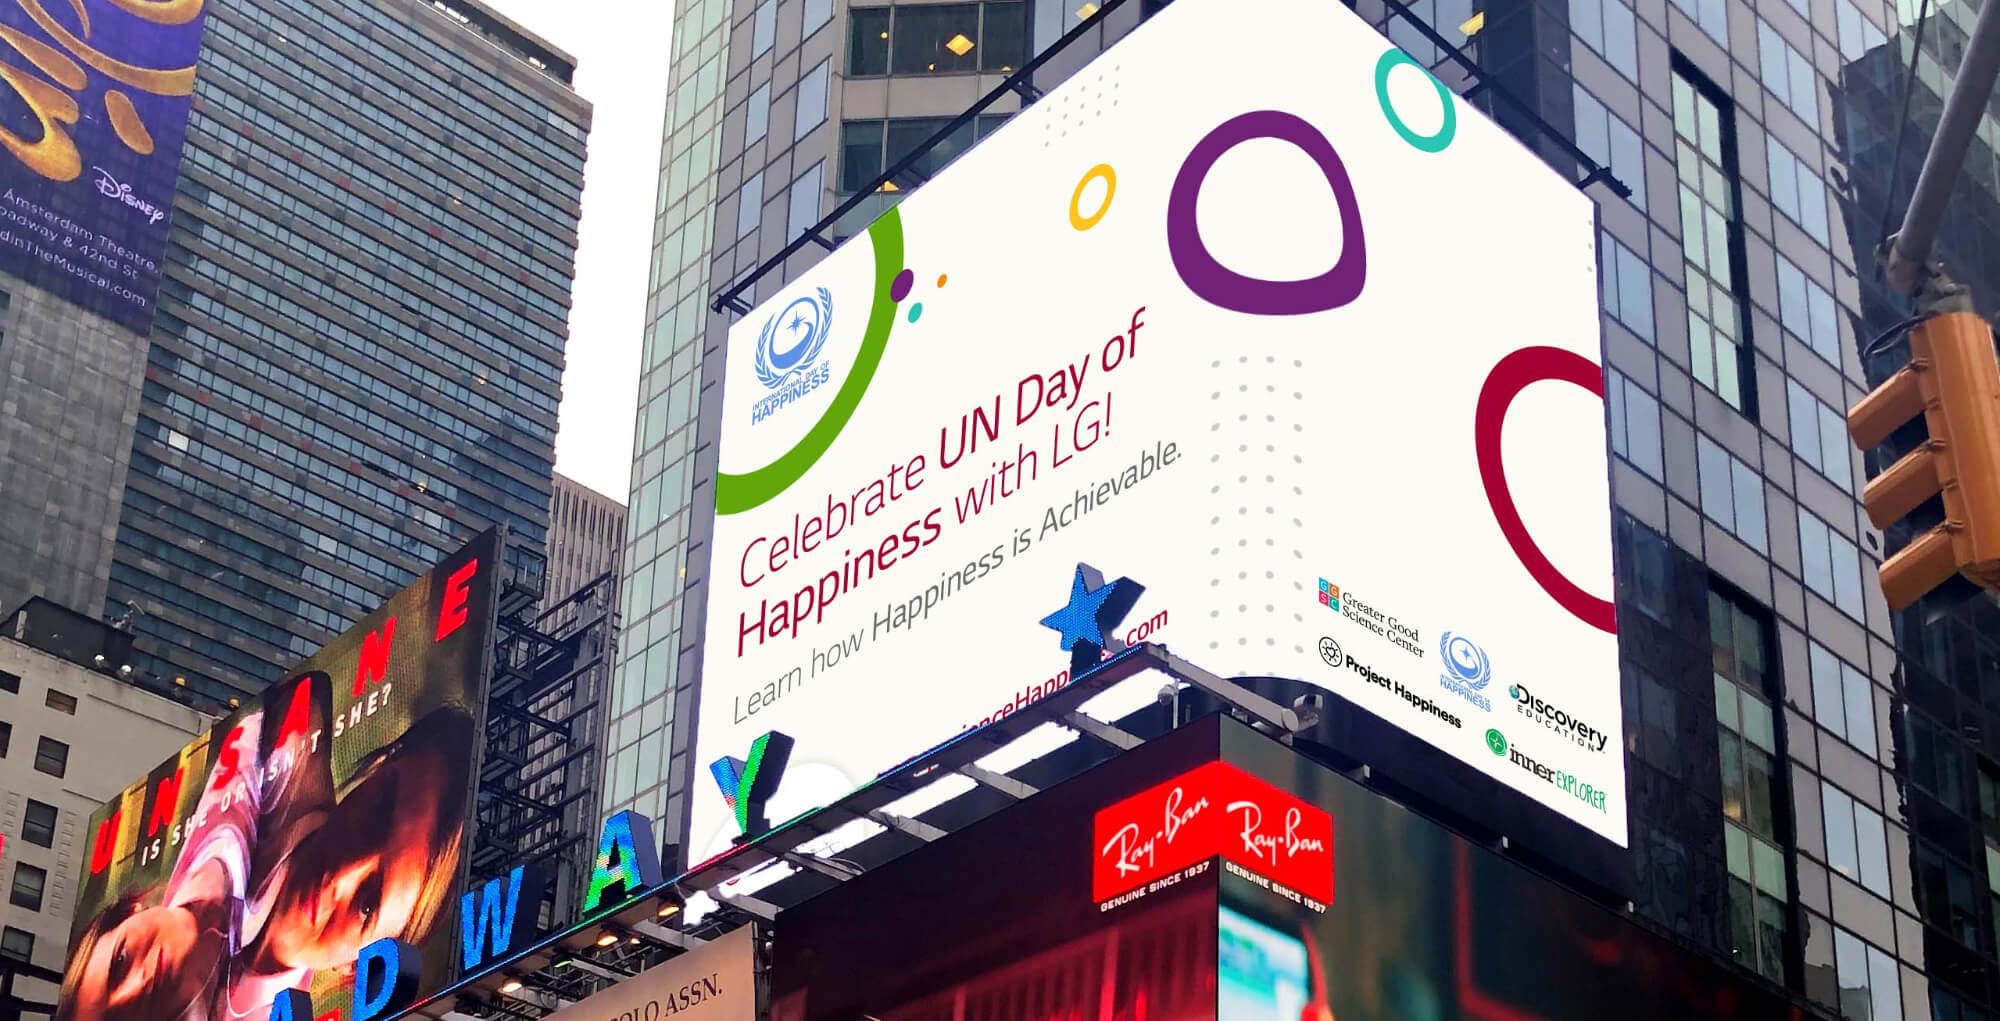 LG Experience Happiness NYC Times Square billboard creative